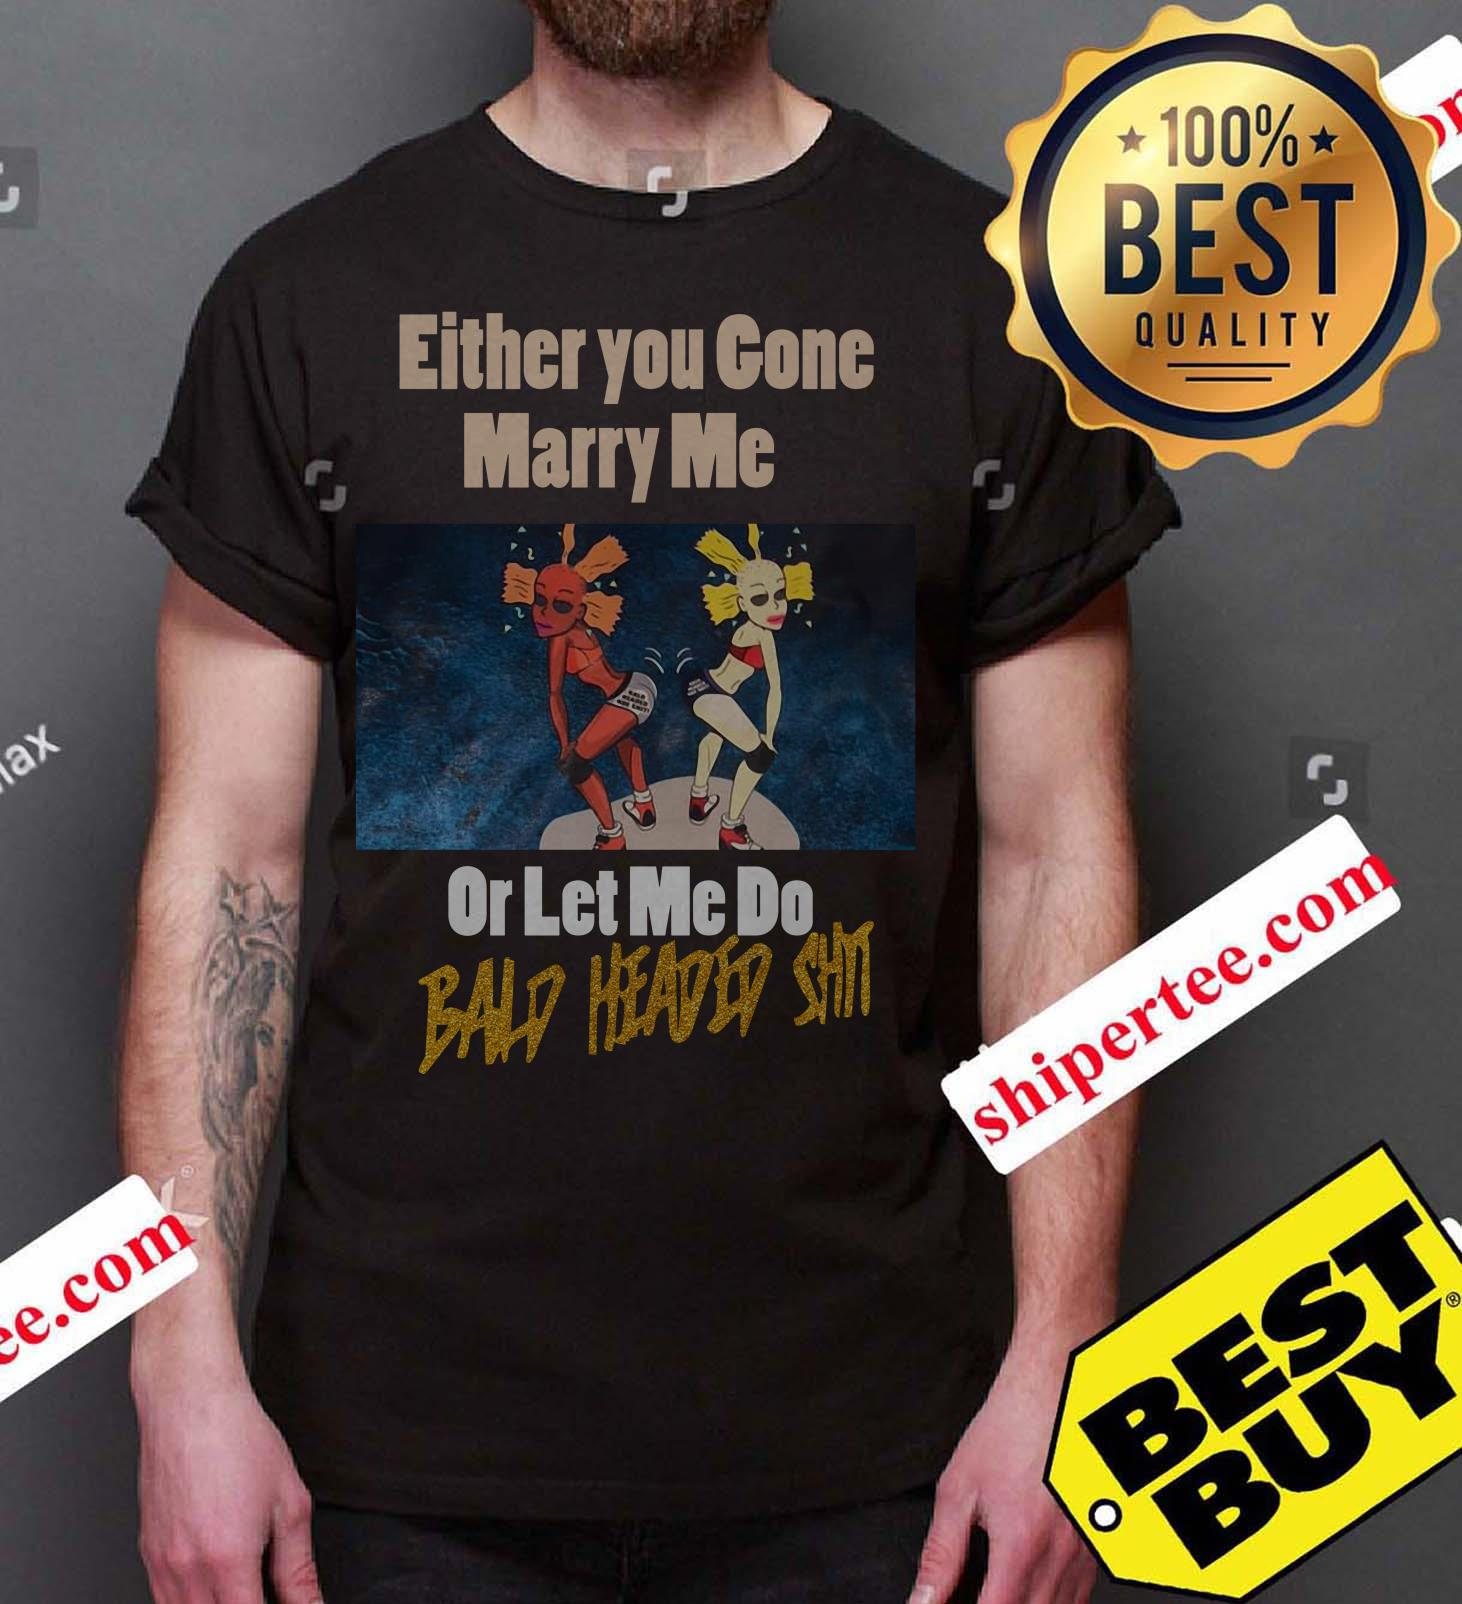 Either you gone marry me or let me do bald headed shit shirt